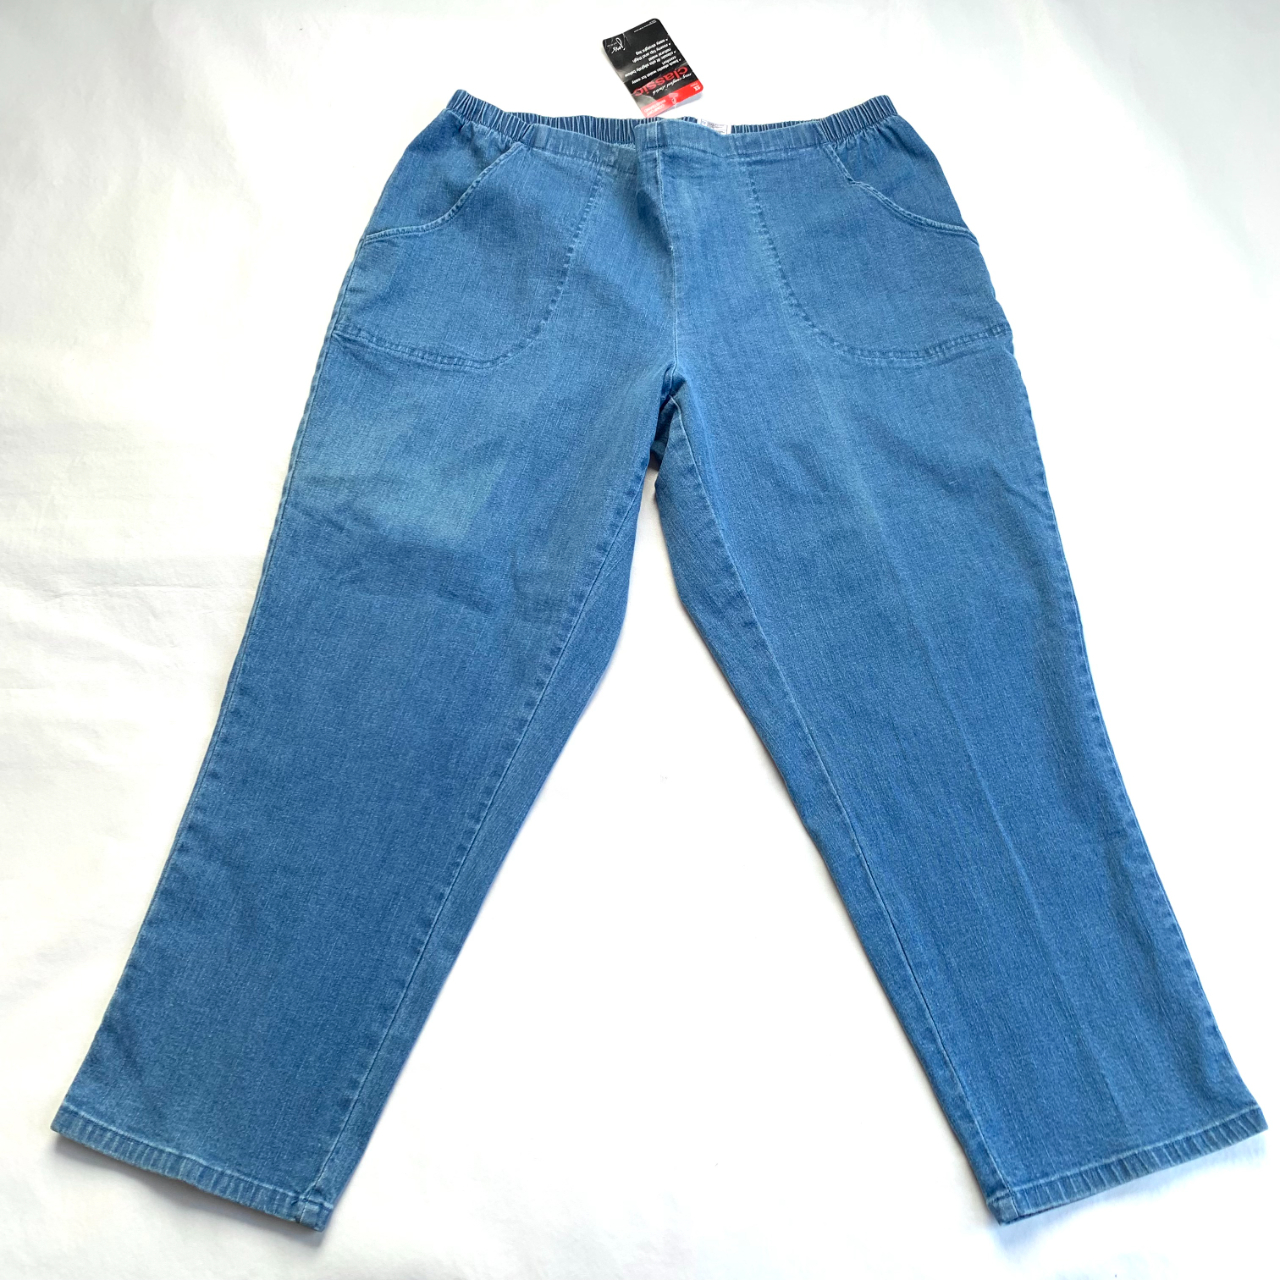 Product Image 1 - Vintage deadstock jeans, Just My